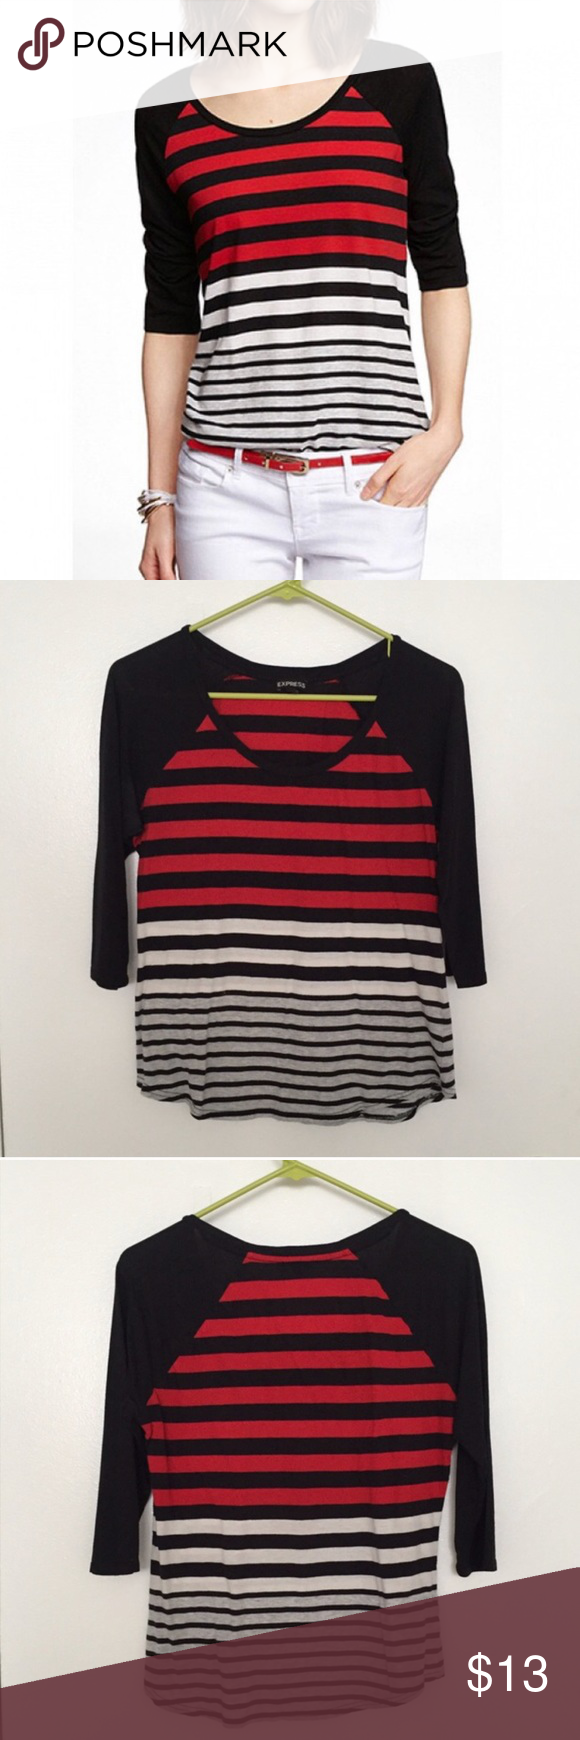 White t shirt express - Express Striped Top Baseball Tee Red Black Shirt Express Stylish Striped Baseball Tee In Red